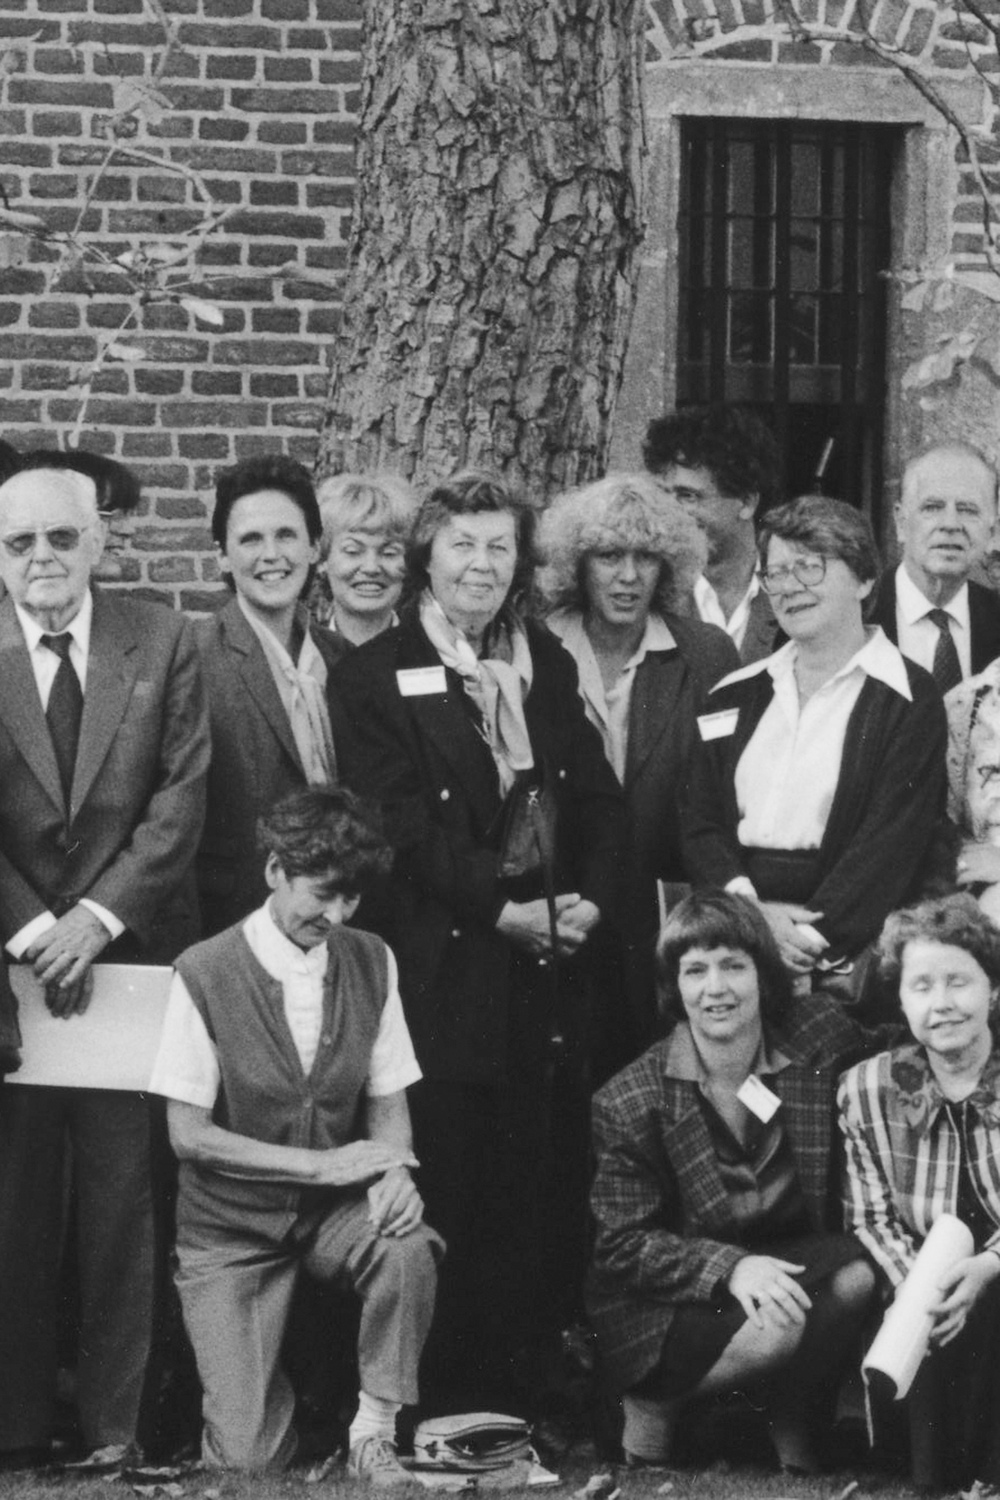 Dr Myriam de Senarclens (top row, fifth from the right)